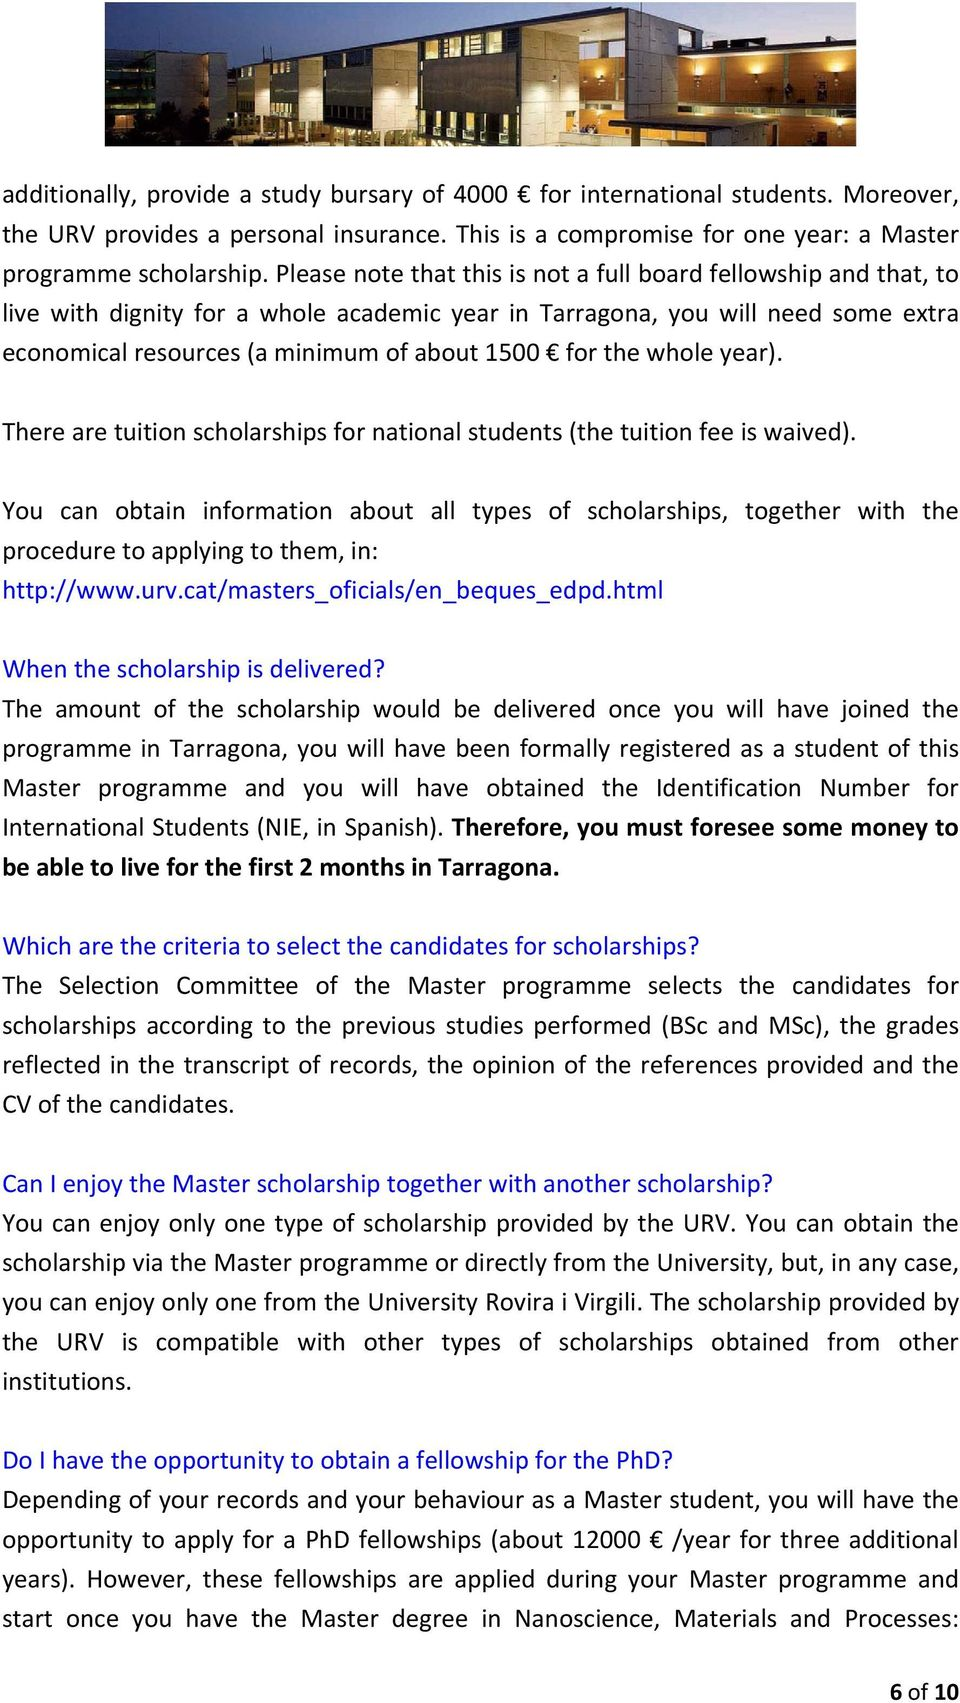 the whole year). There are tuition scholarships for national students (the tuition fee is waived).